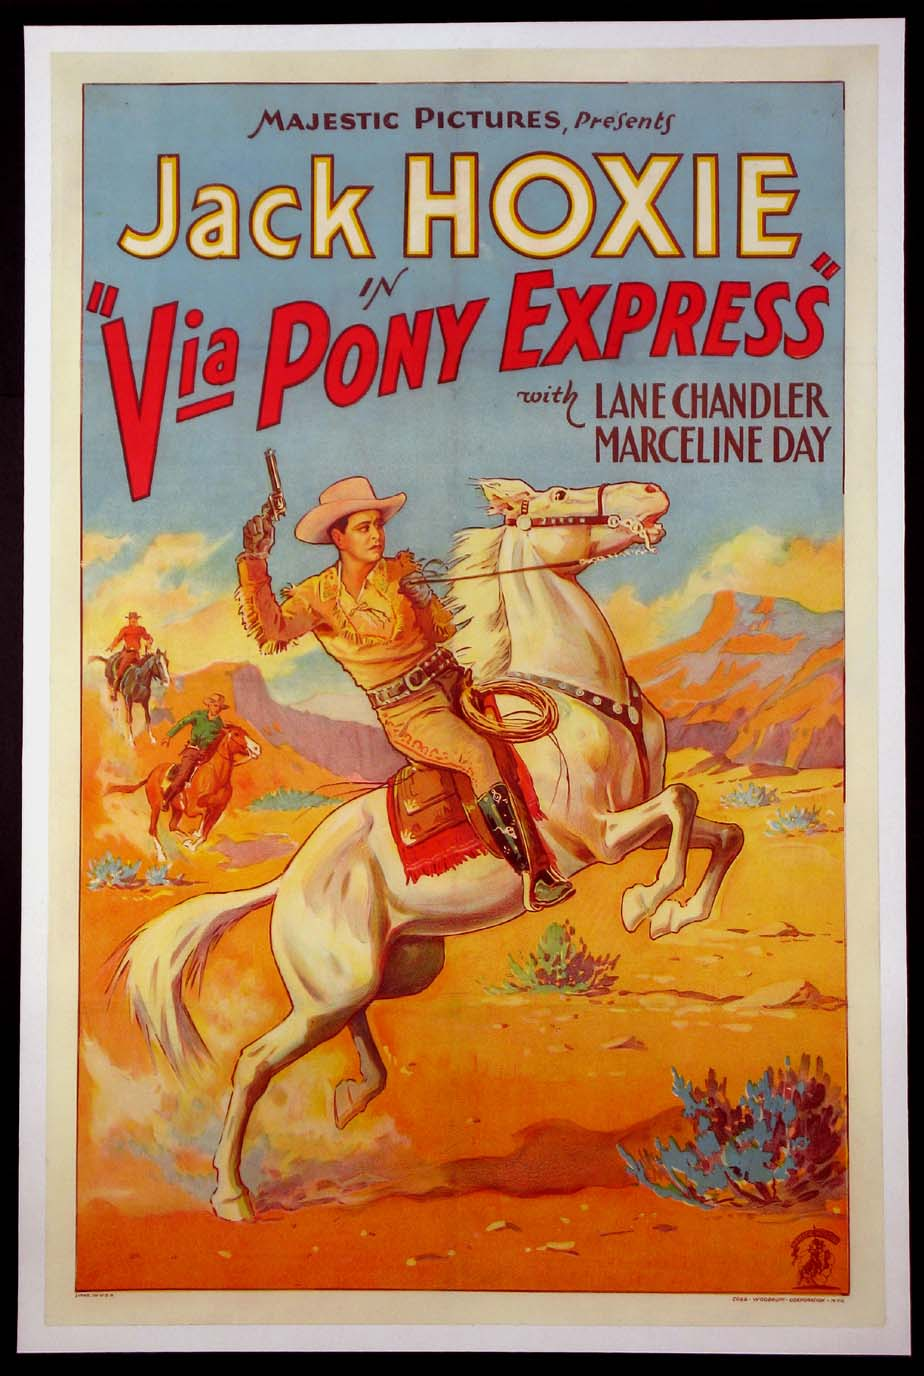 VIA PONY EXPRESS @ FilmPosters.com